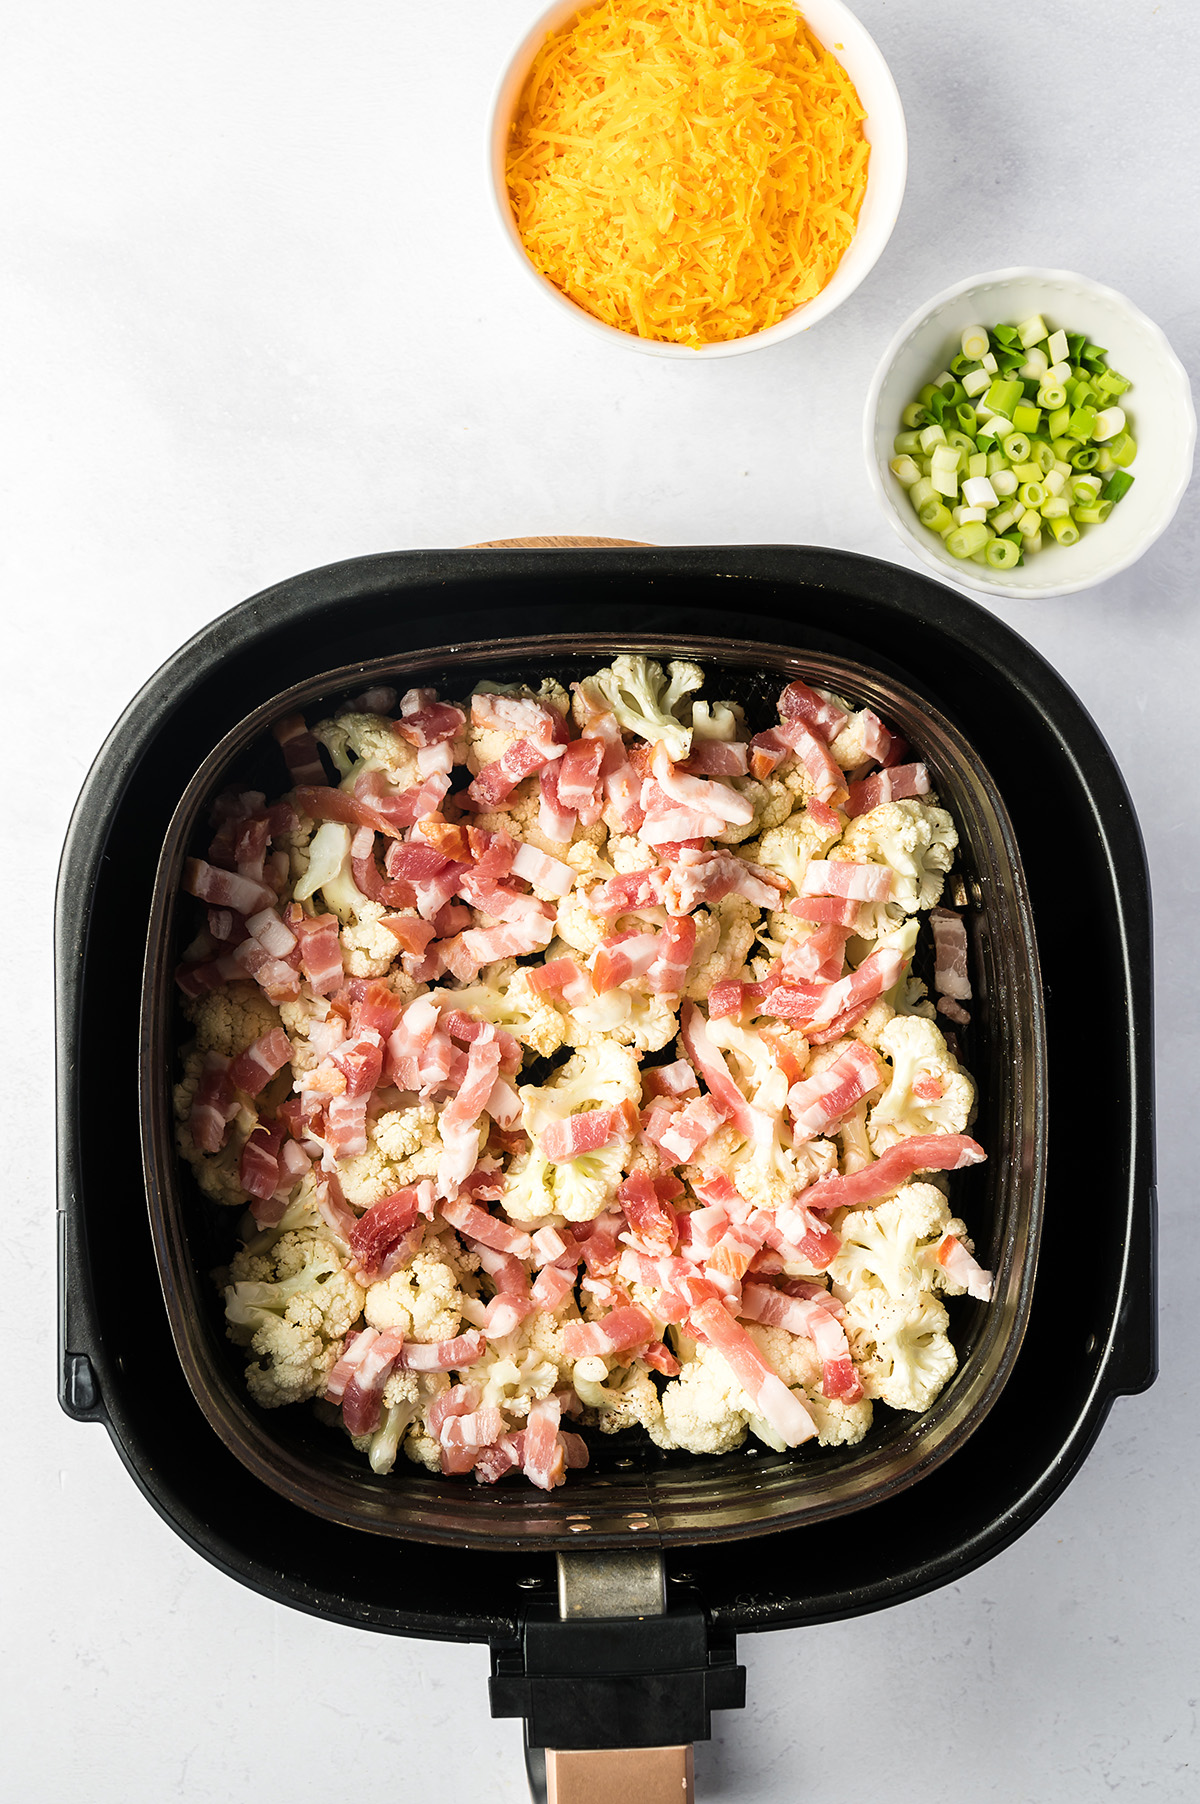 Raw bacon pieces on top of cauliflower in an air fryer basket